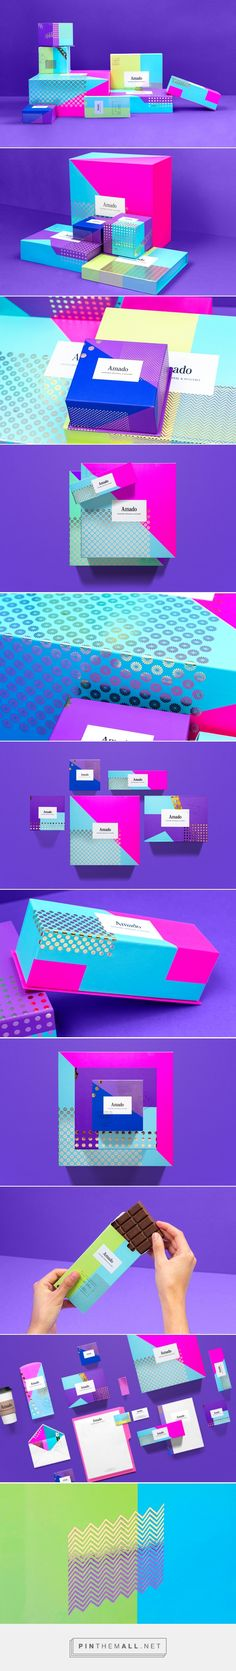 Amado bakery and candy boutique by Anagrama. special thanks to team member Jeny Mihailova for alerting me to this stellar PD Branding And Packaging, Candy Packaging, Bakery Packaging, Cool Packaging, Cosmetic Packaging, Business Branding, Module Design, Photography Packaging, Brand Board